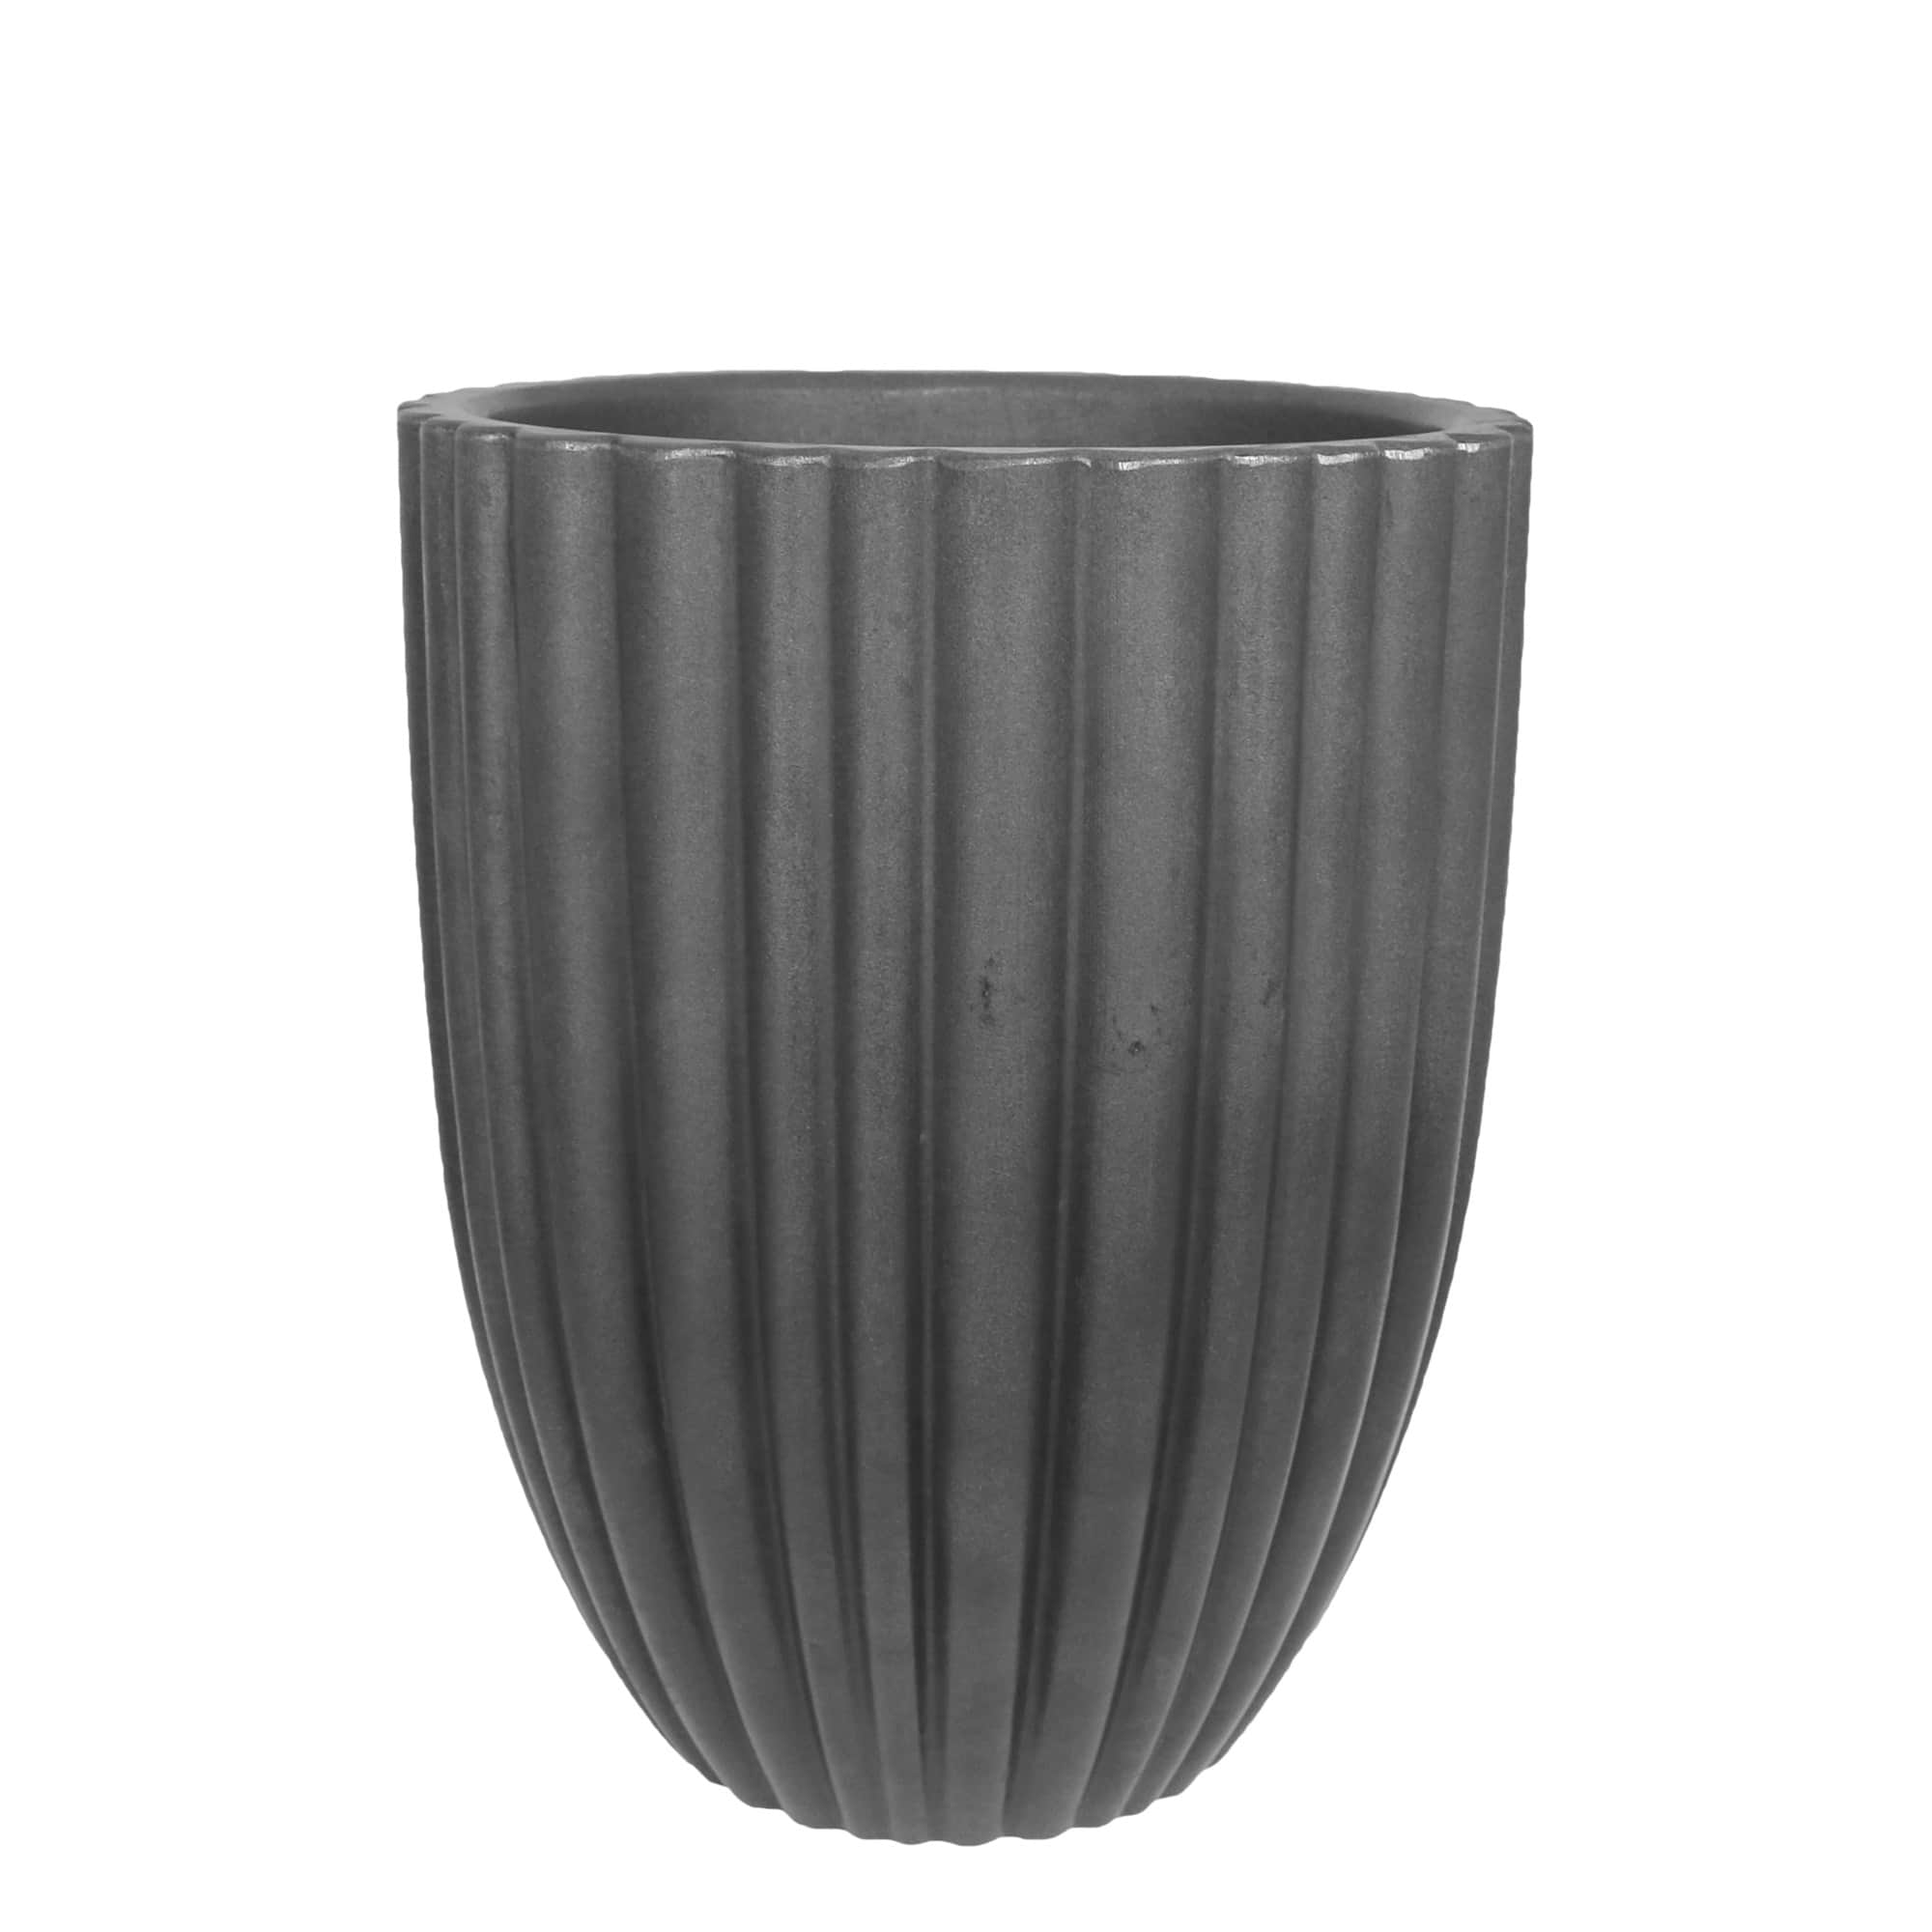 Vaso Cacau 32 x 46 cm Antique Preto